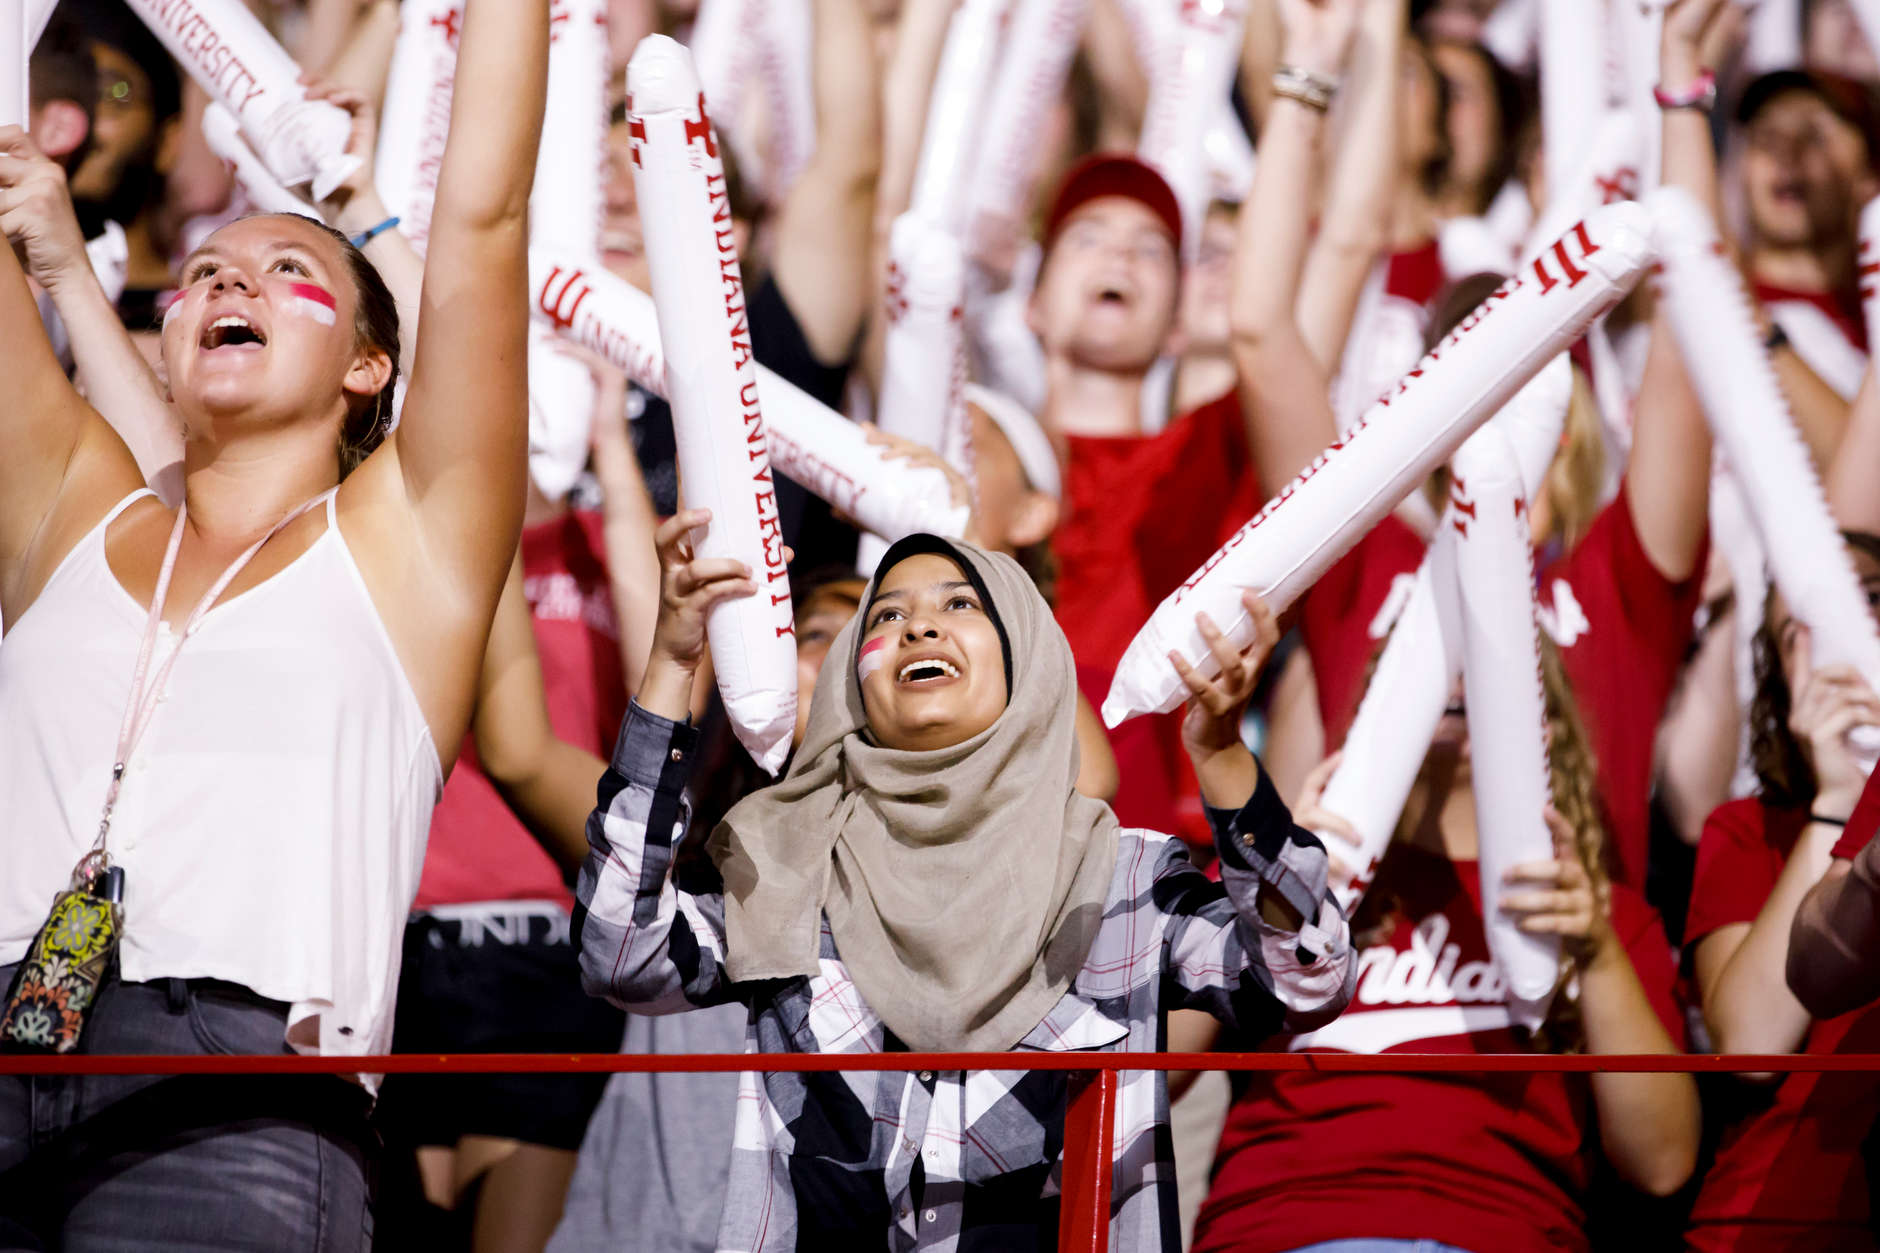 A student claps inflatable noise sticks together during the Traditions and Spirit of IU at Assembly Hall on Friday, Aug. 17, 2018. (James Brosher/IU Communications)